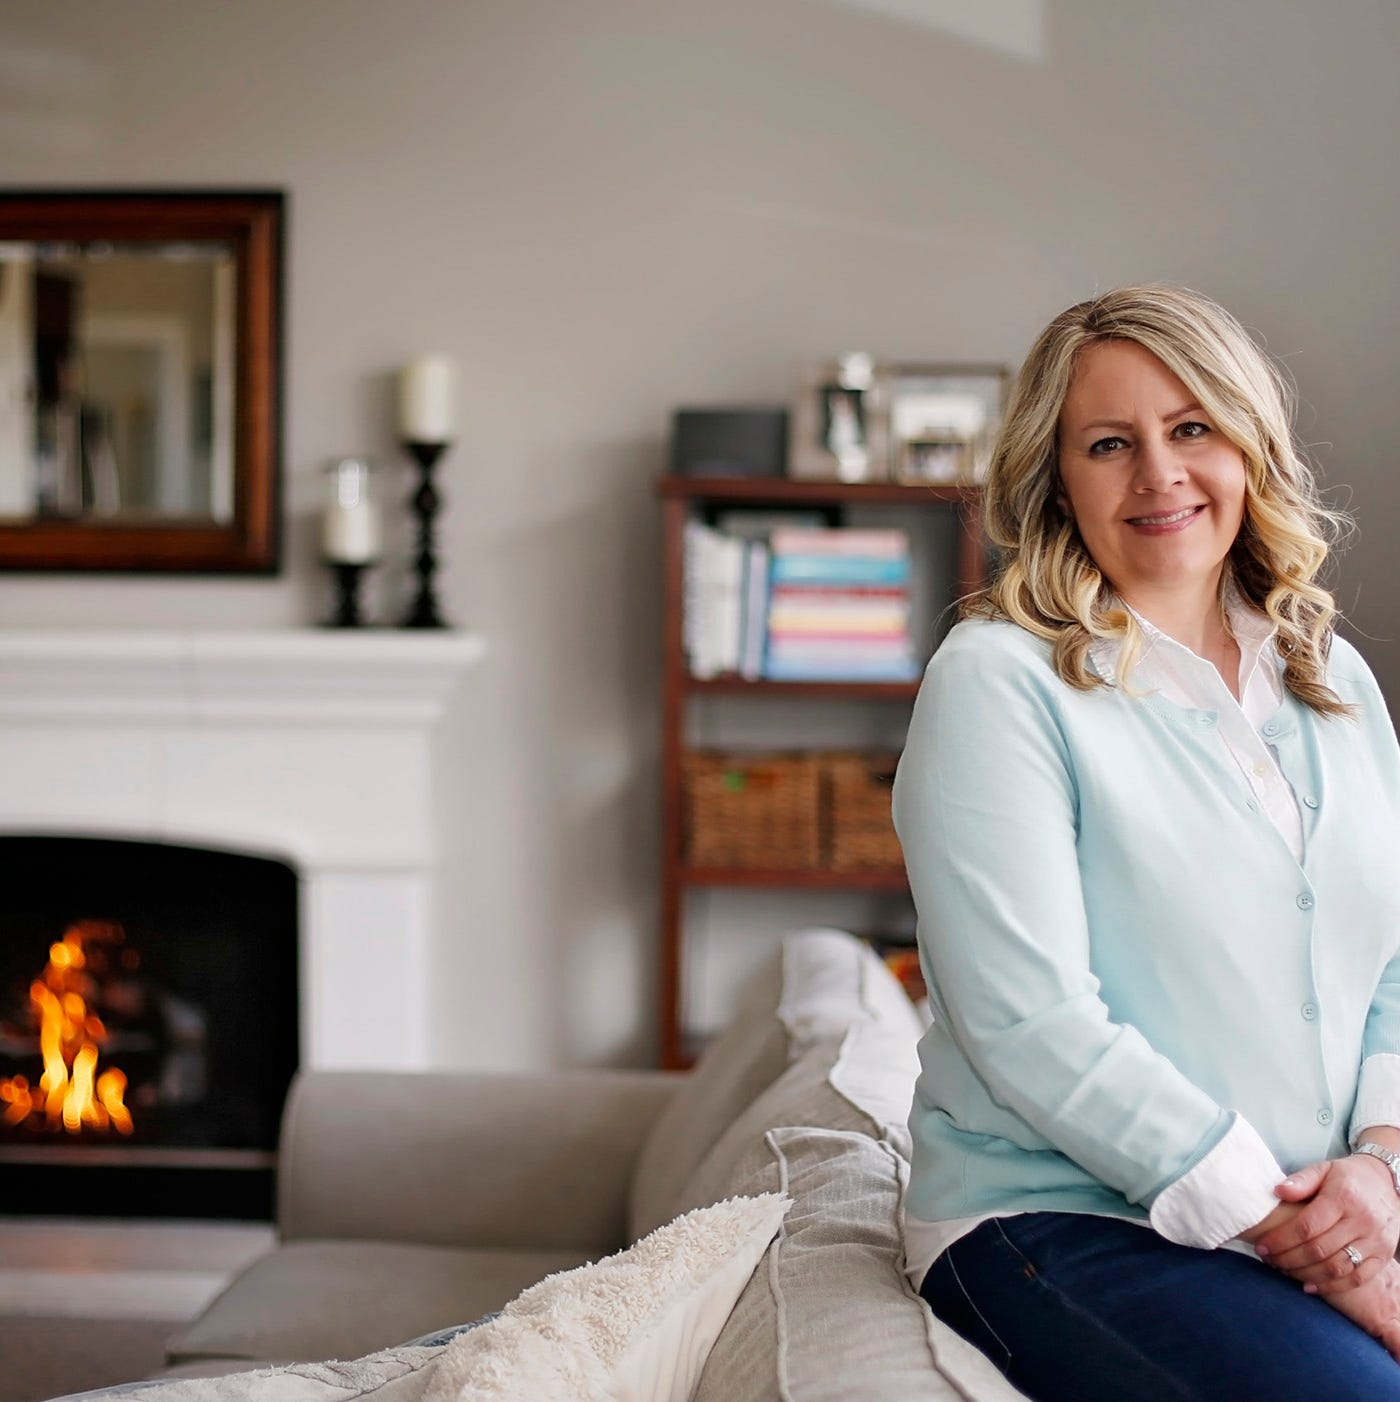 Chicago's answer to Marie Kondo is a mom-turned cleaning guru with a Midwestern touch